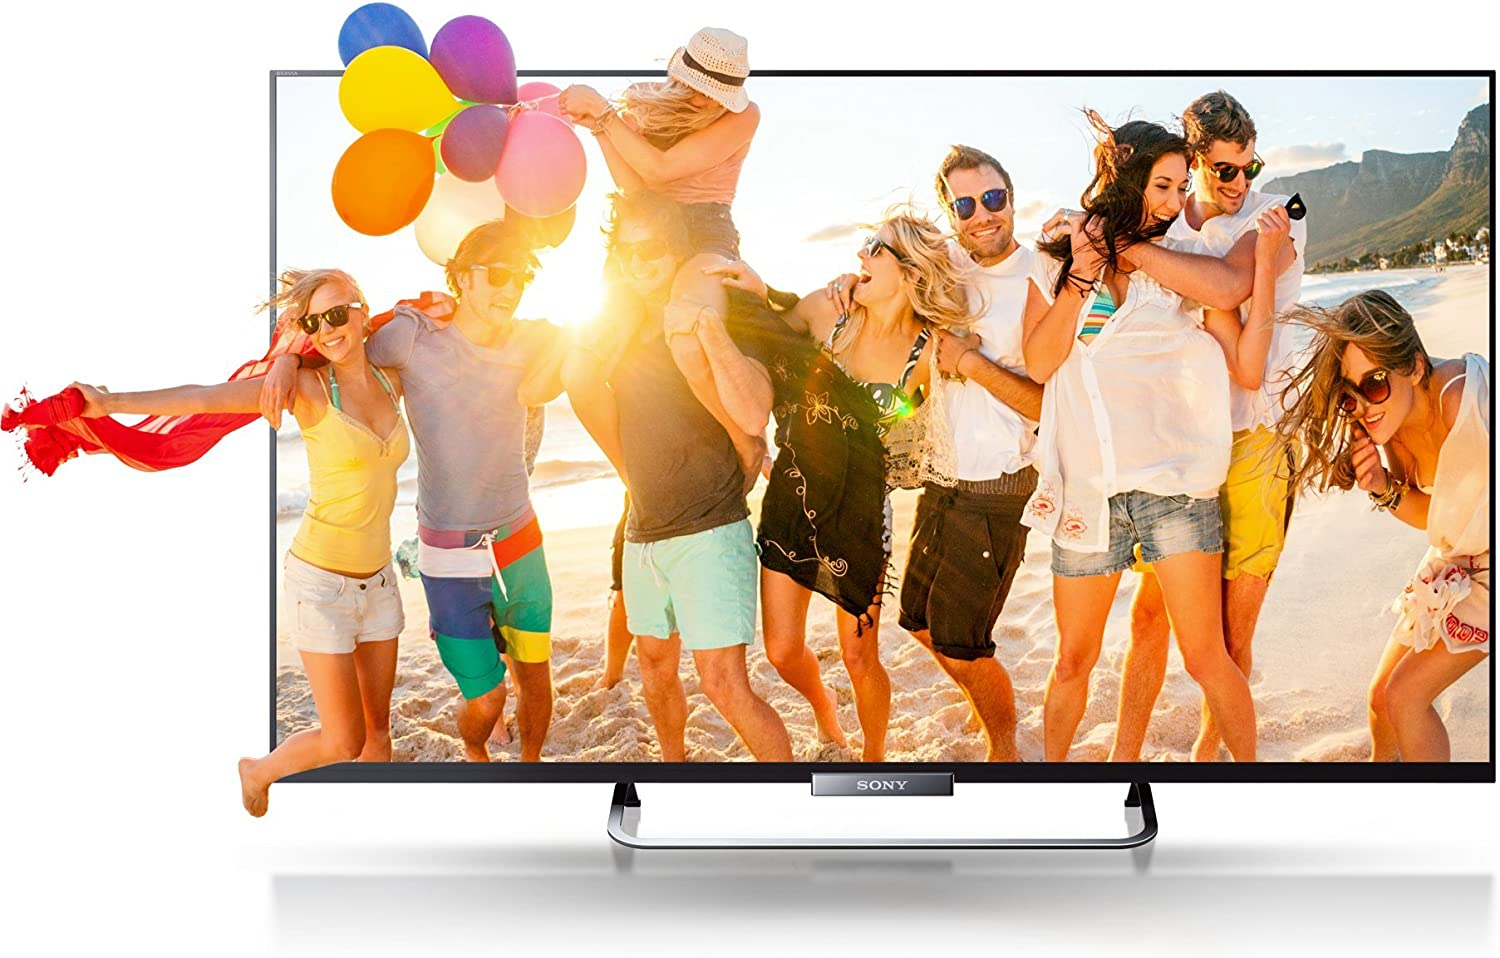 Sony KDL-50W685 - Televisor Edge LED Full HD 3D de 50